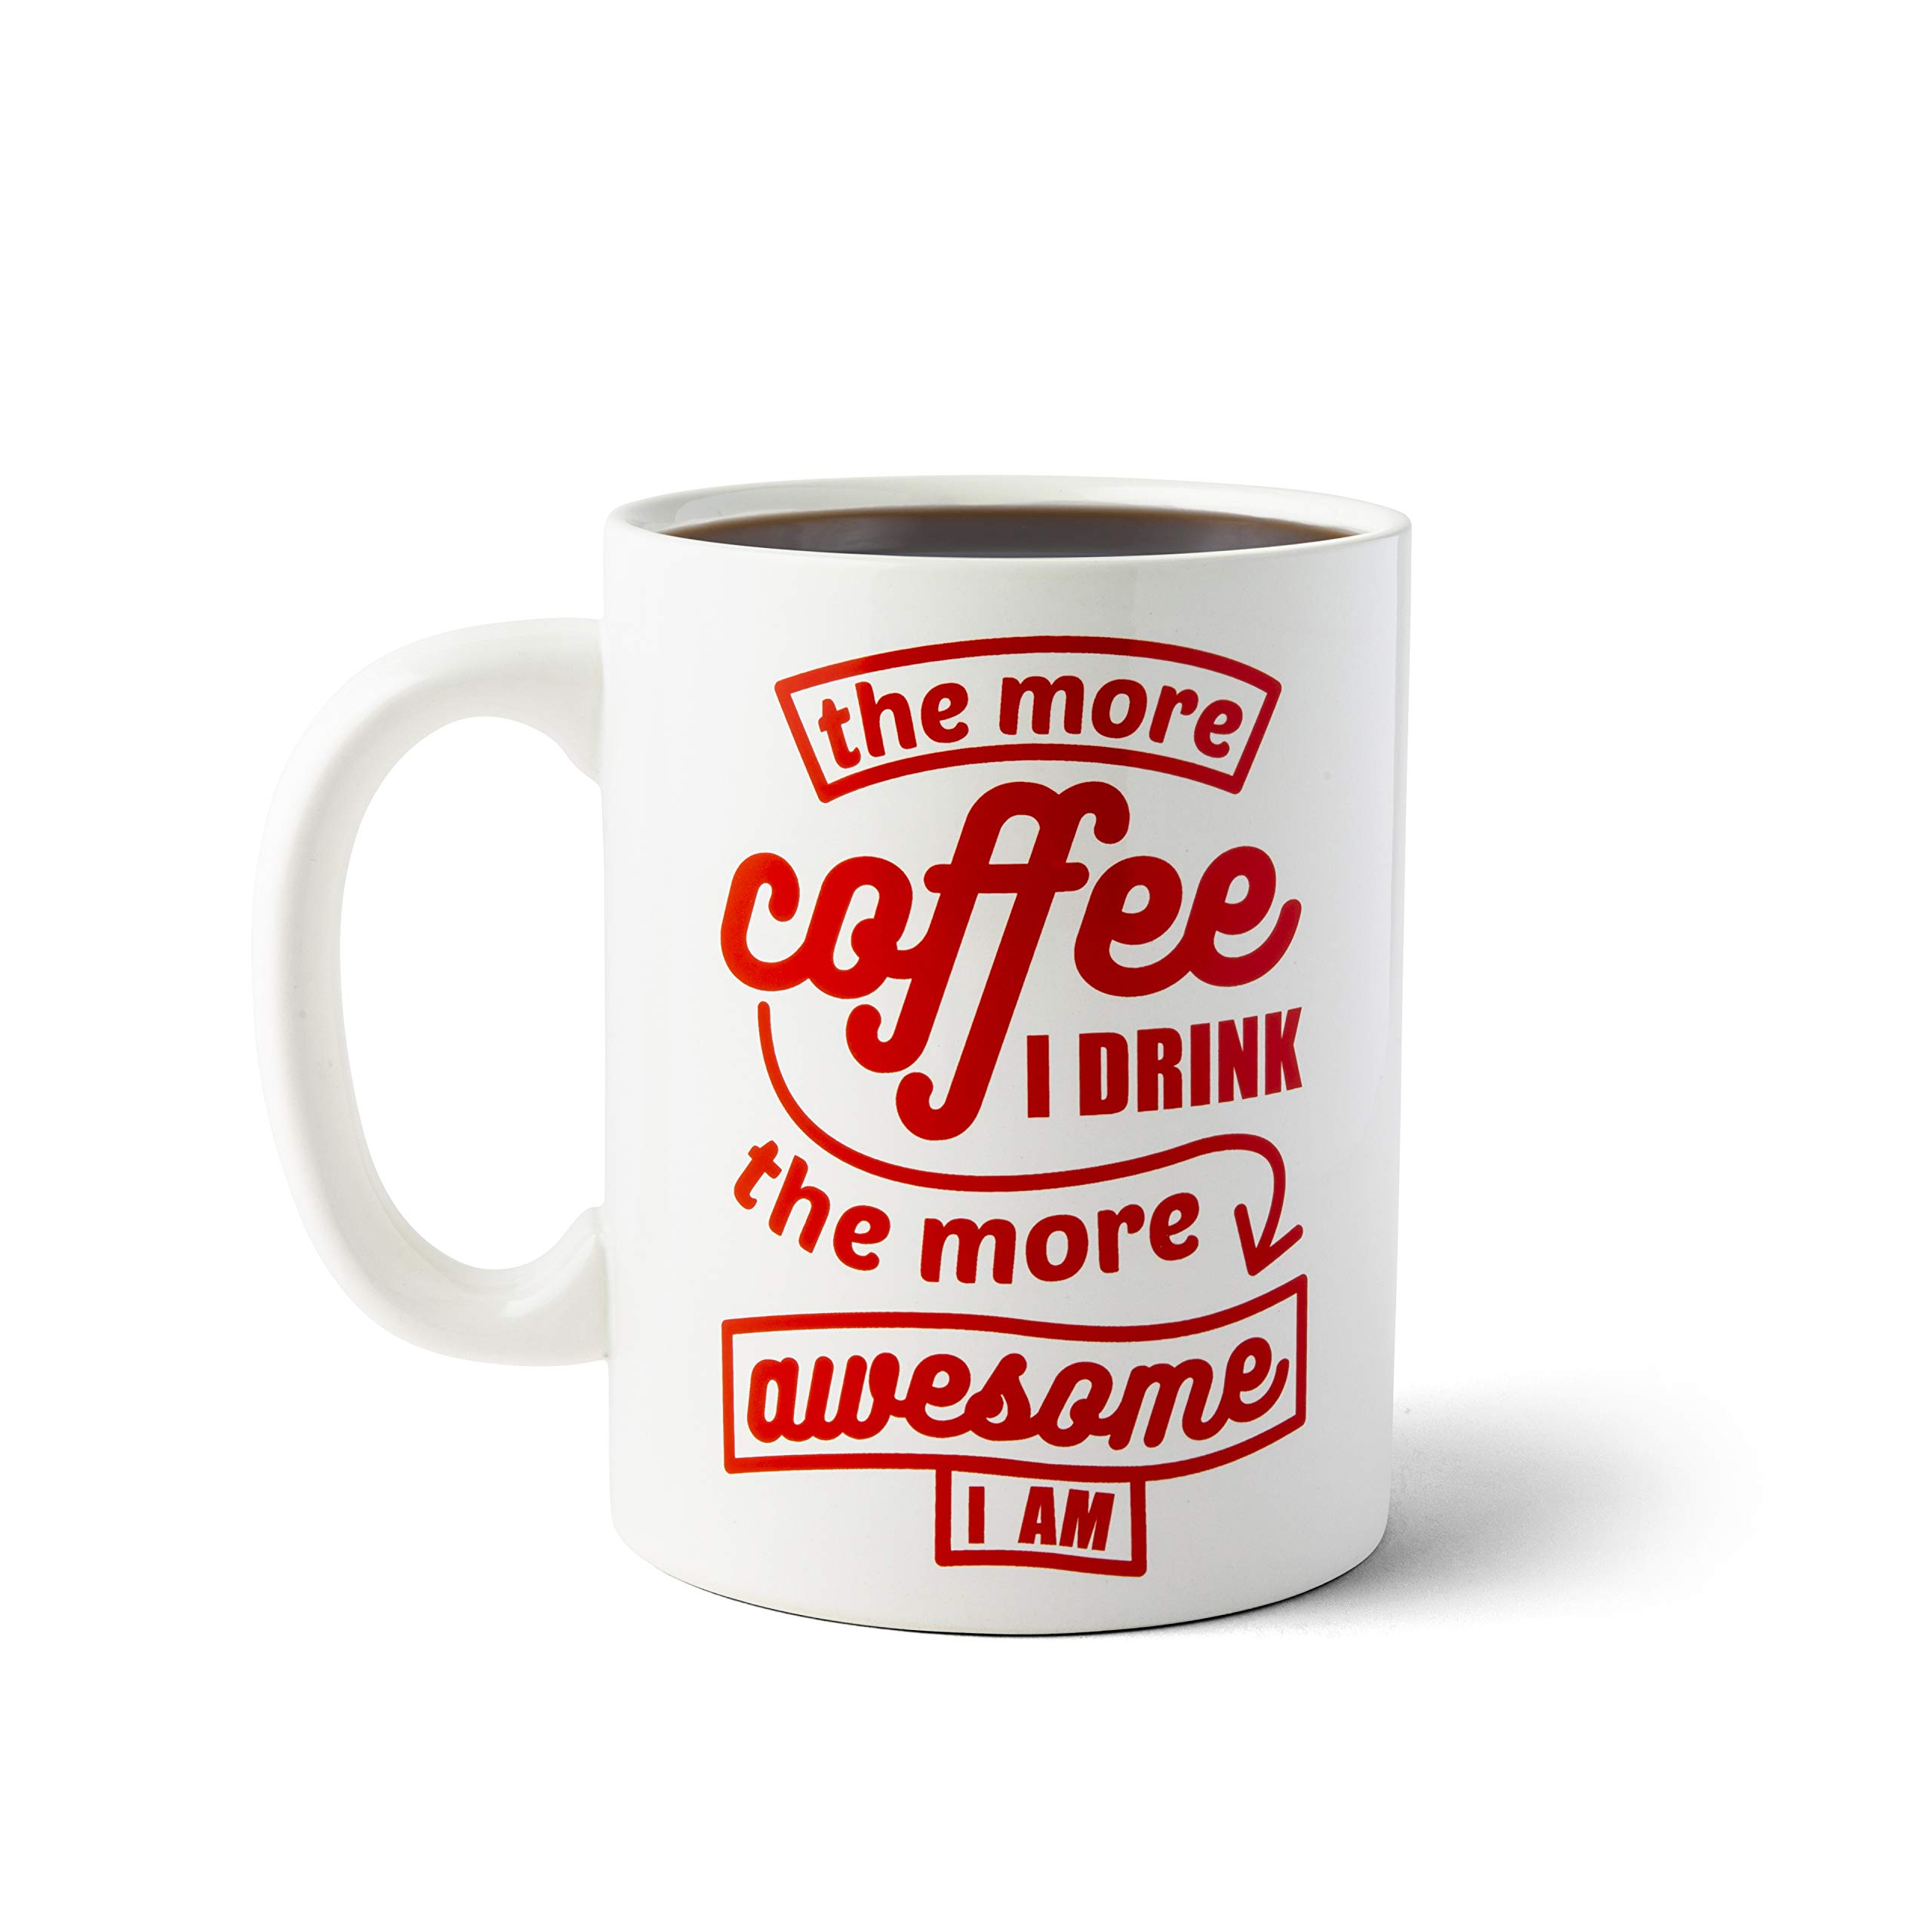 Bigmouth Inc I M Awesome Gigantic Mug Hilariously Huge 64 Oz Ceramic Coffee Cup Perfect For Gag Gift For Coffee Lovers Cups Mugs Saucers Amazon Com Au